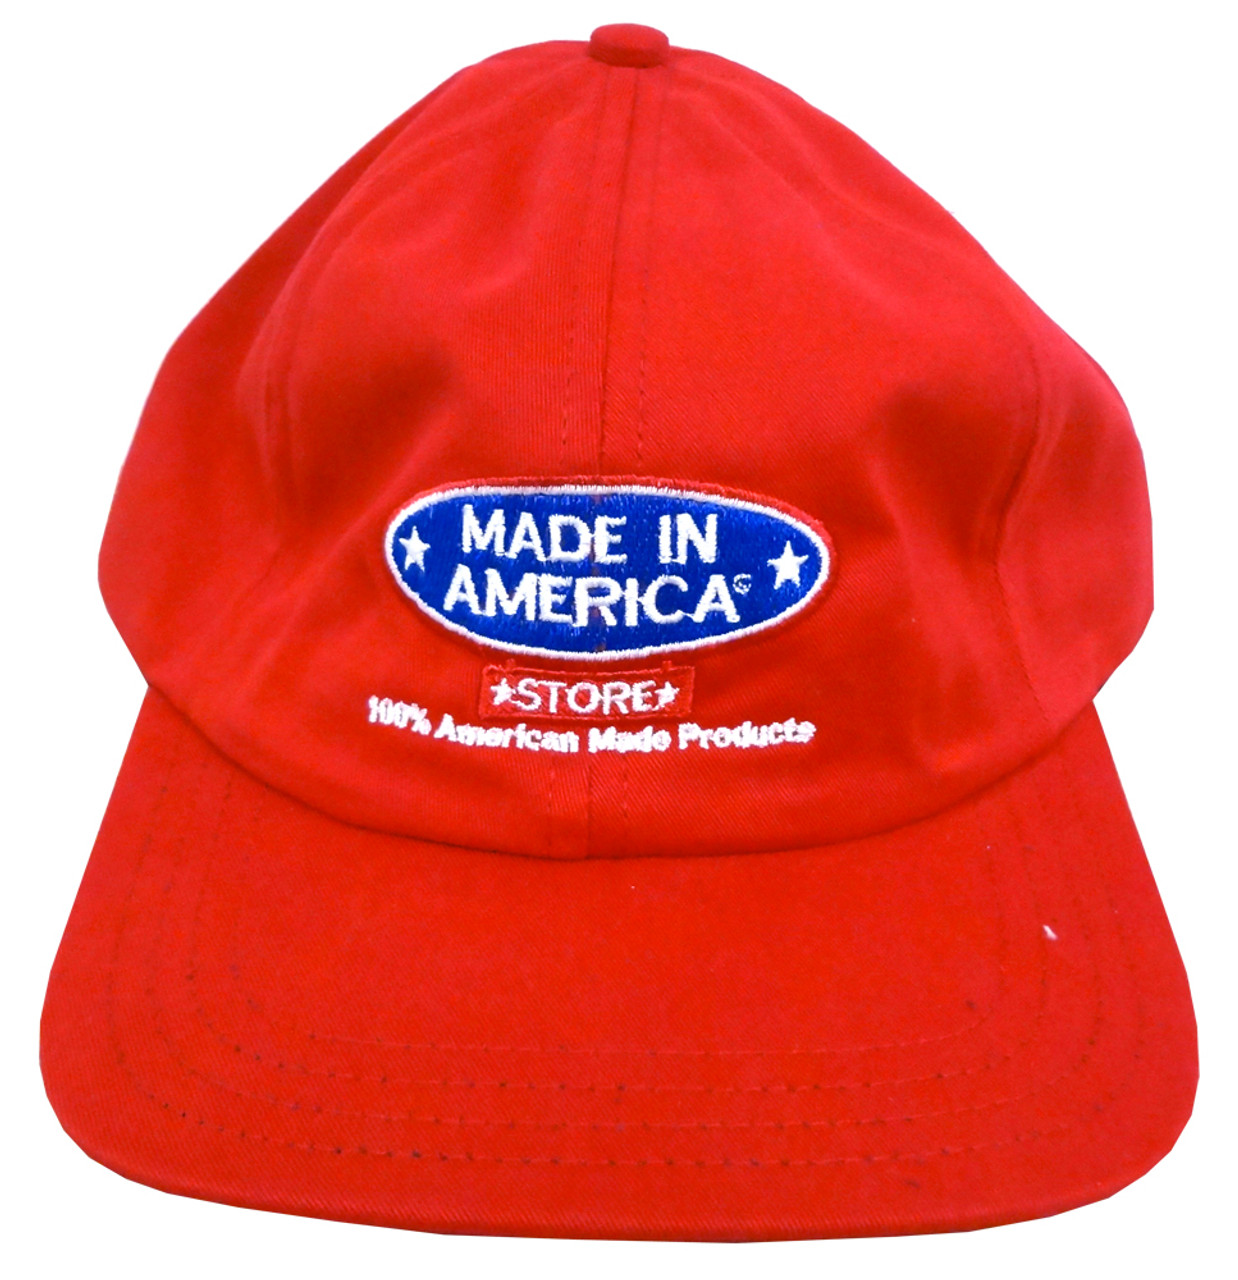 aea42f2bbfb Made In America Store Baseball Cap (Unstructured